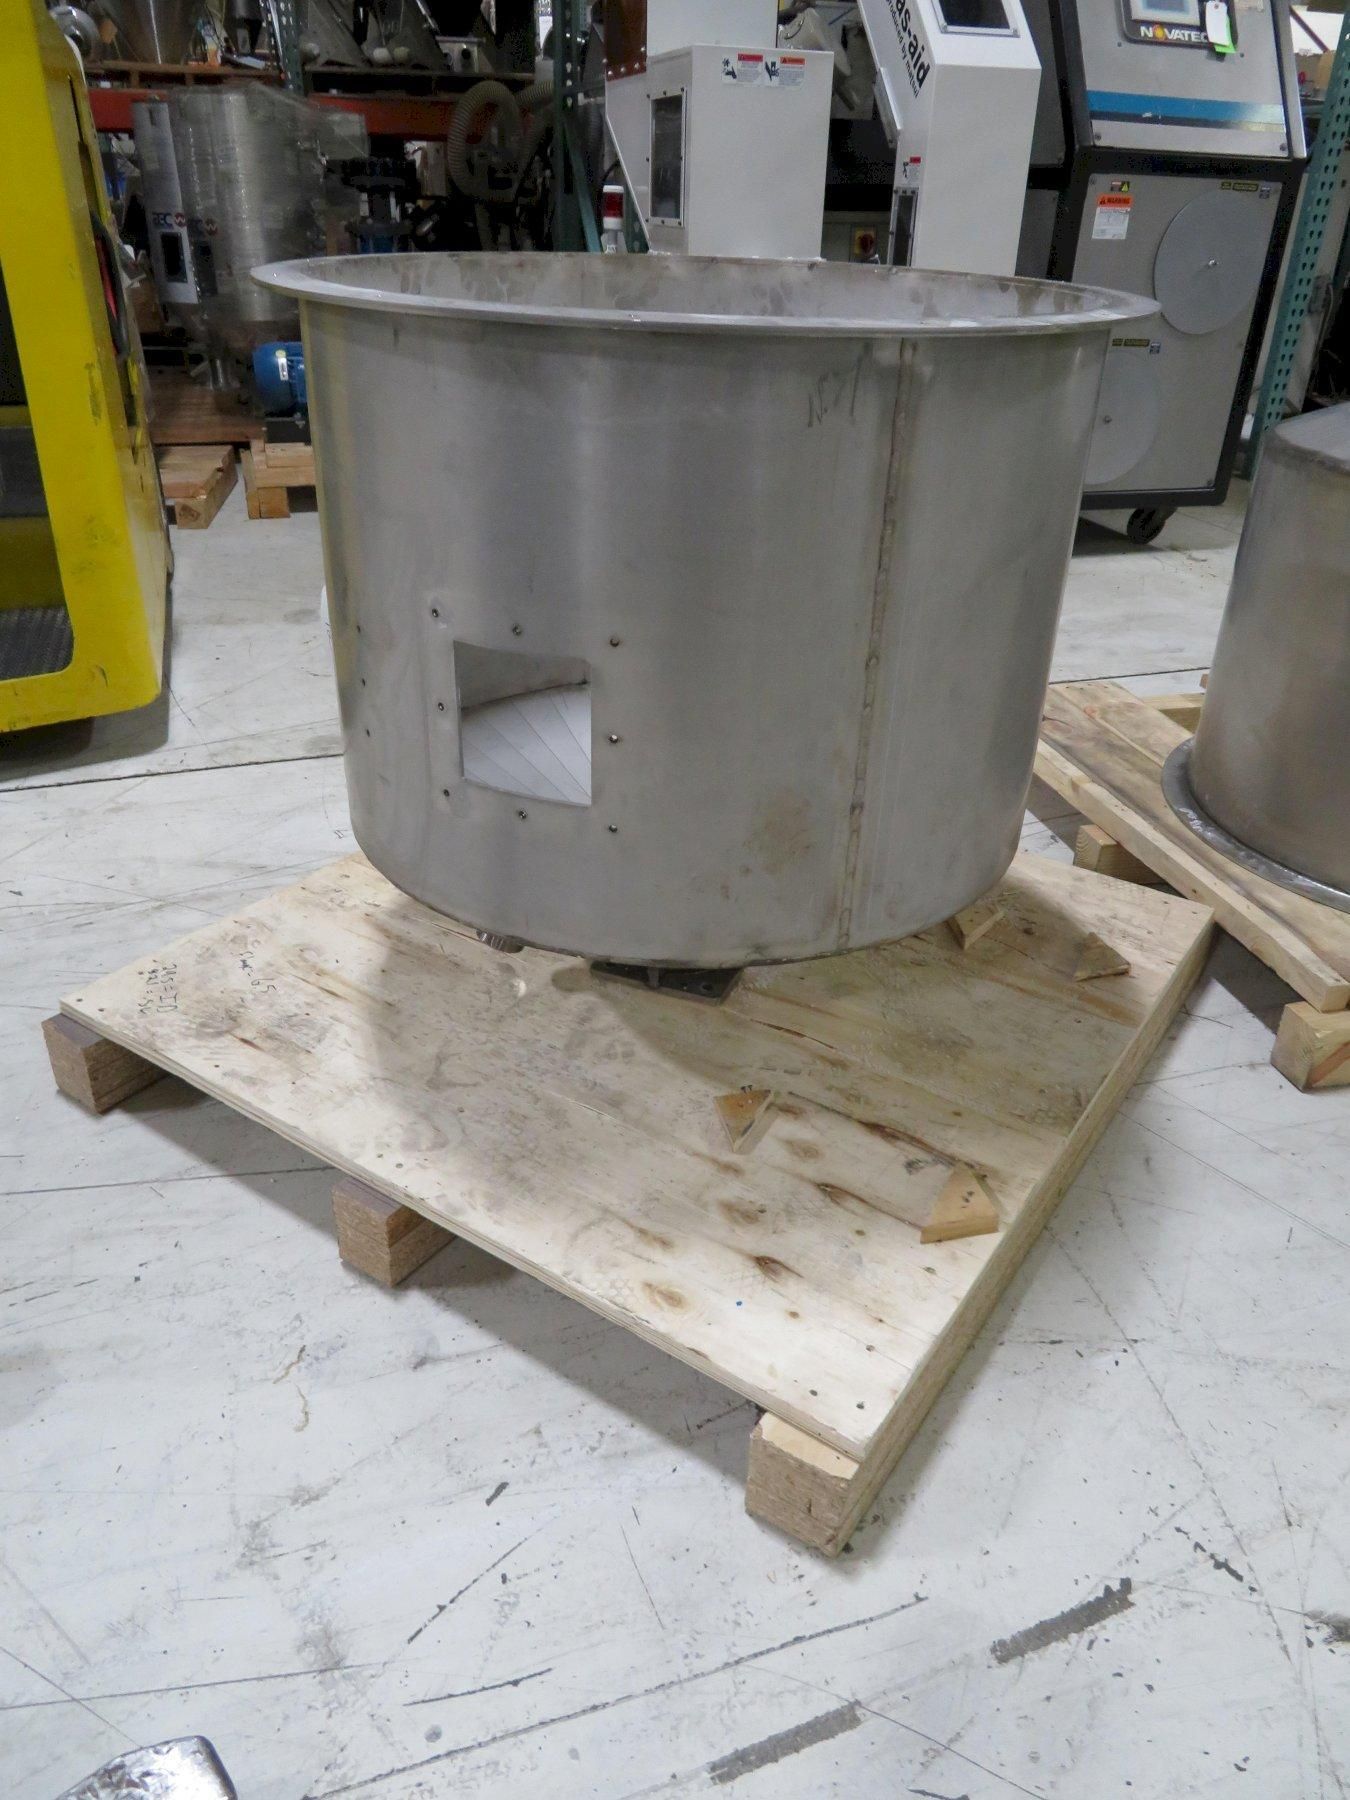 Stainless Steel Used Material Hoppers, Approx 300 lb capacity